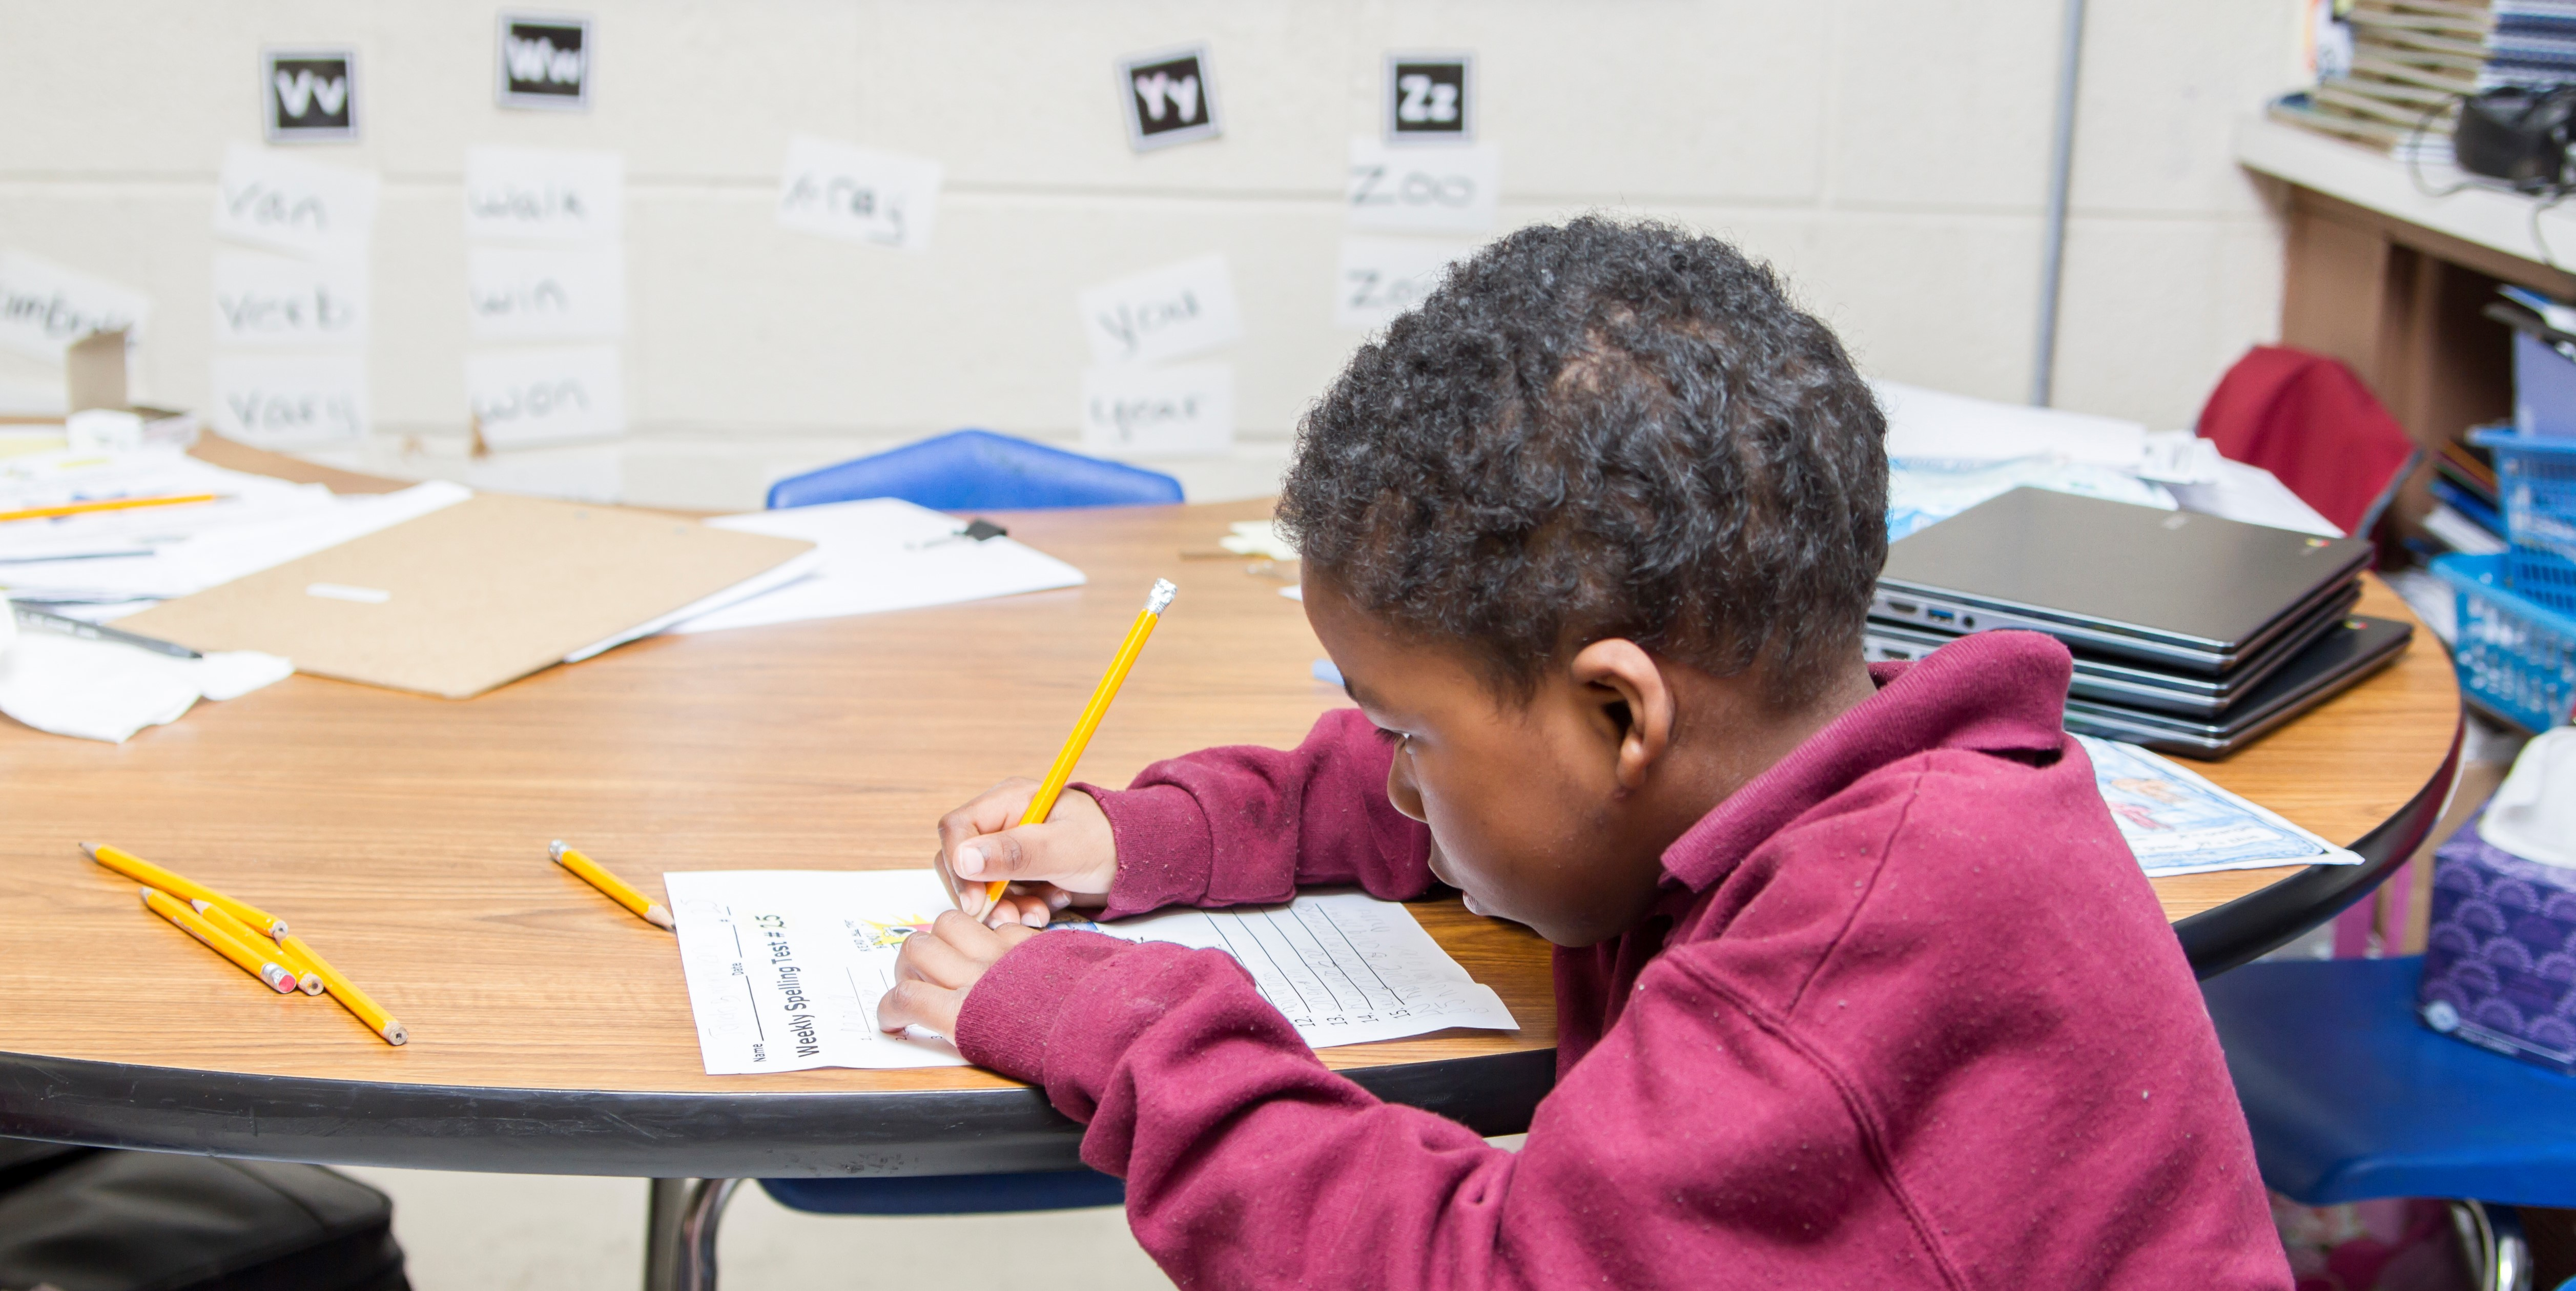 Child working at desk in classroom.